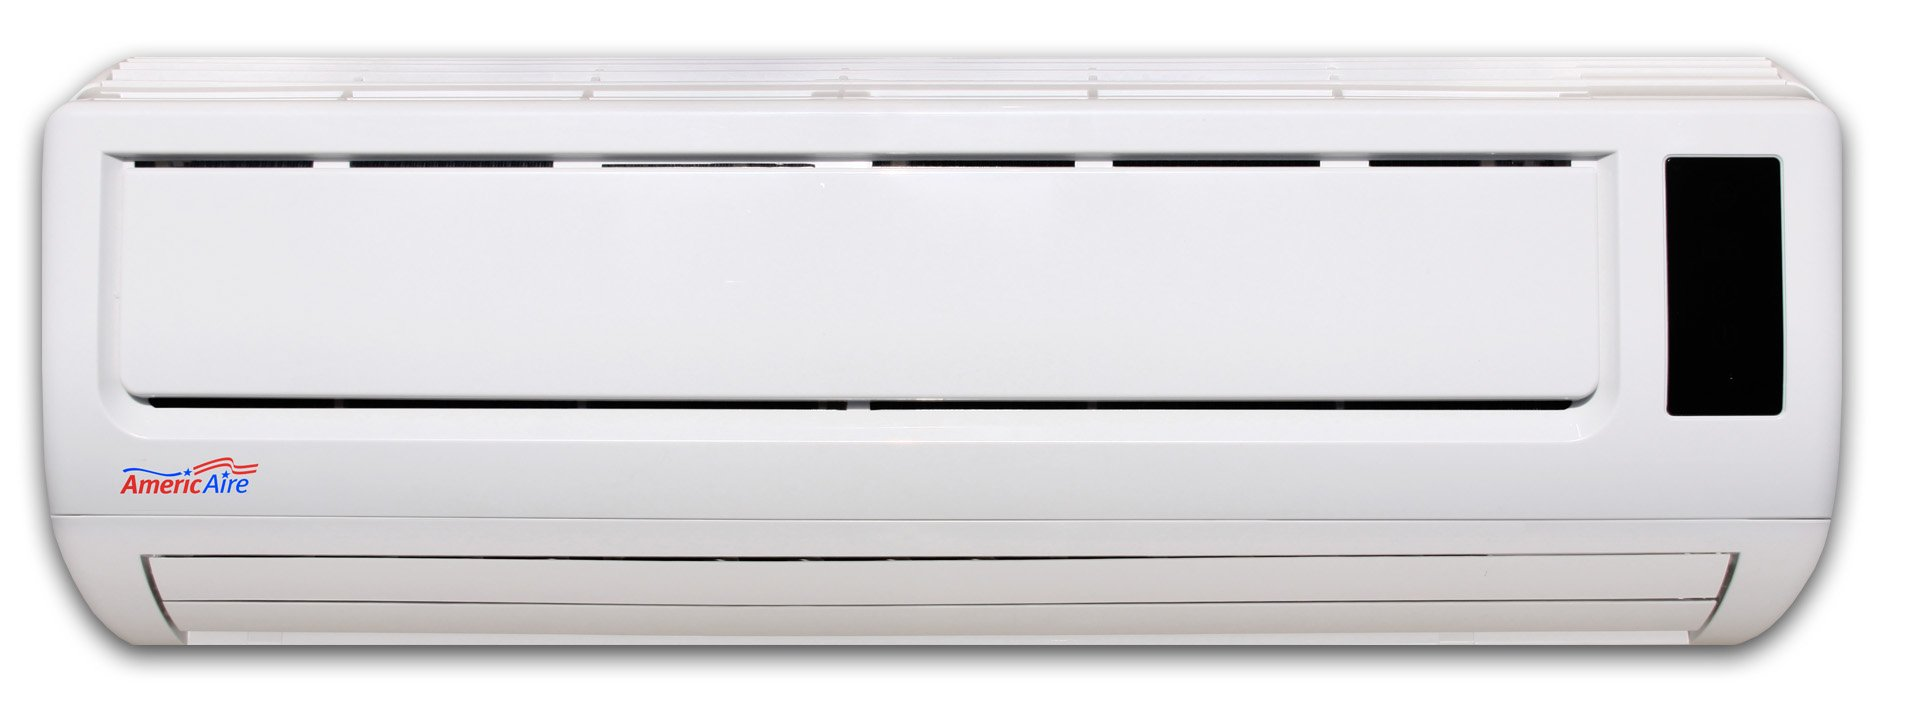 Midea Split Air Conditioner Manual